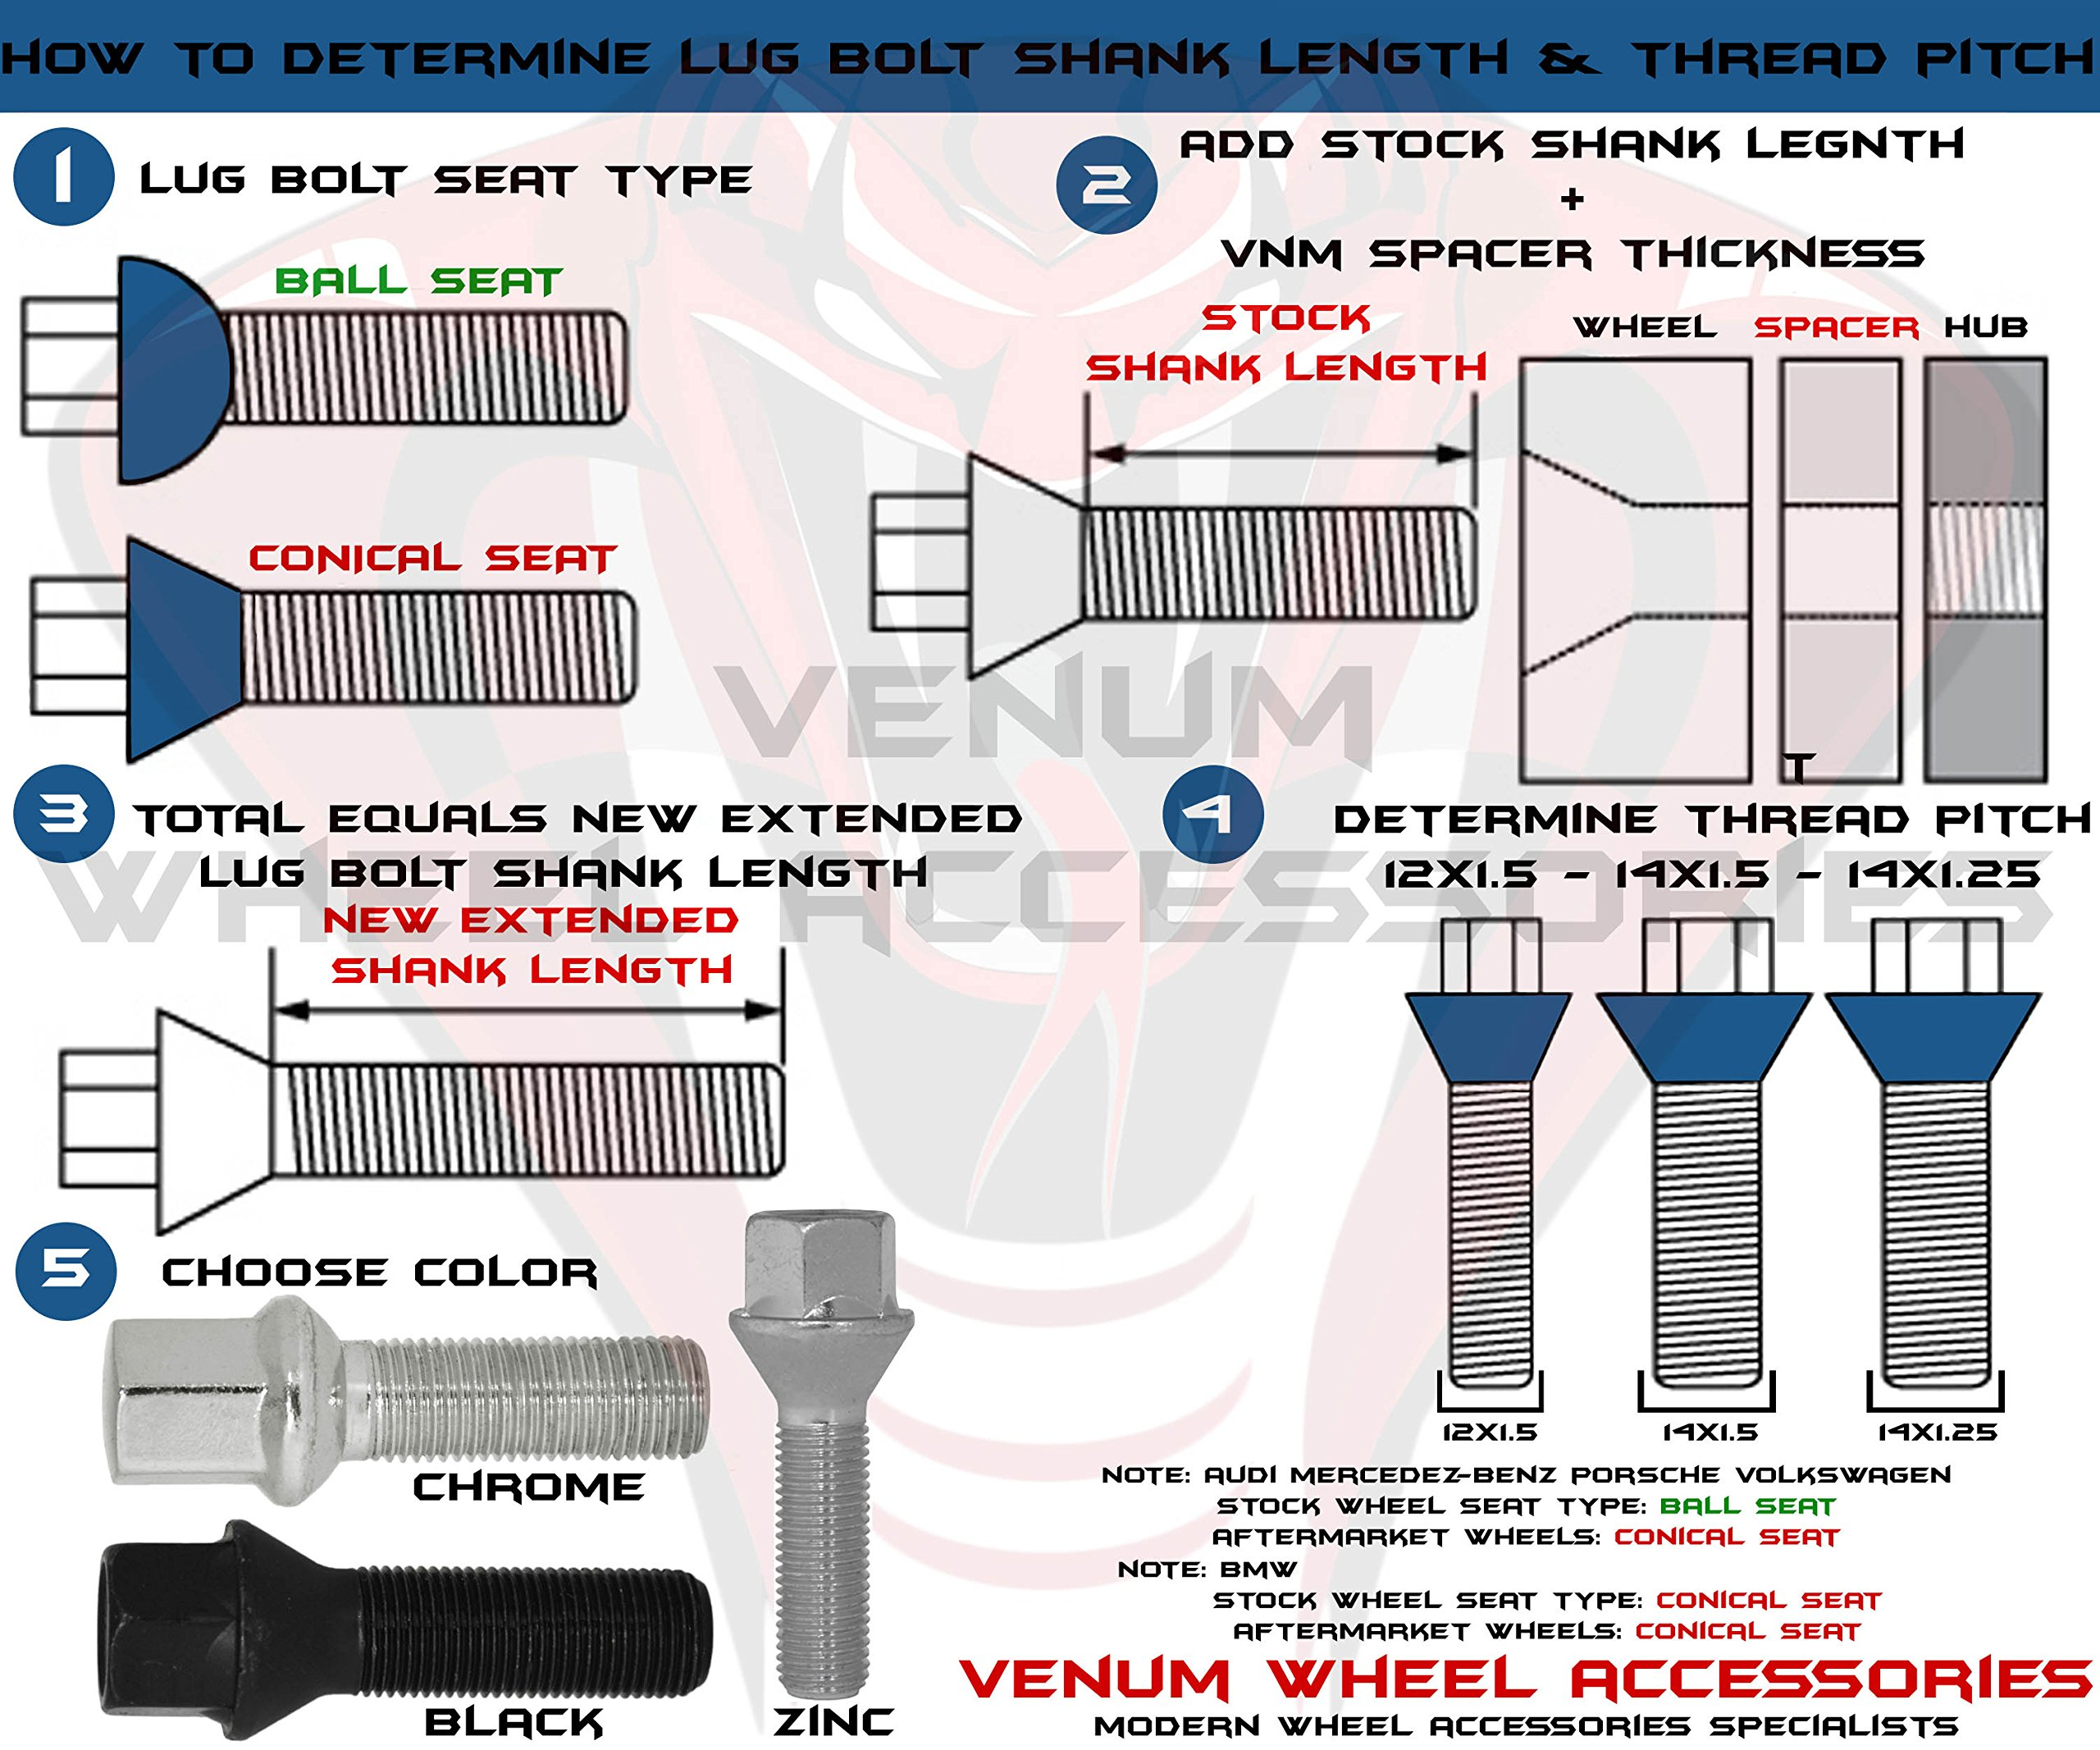 10 Extended Lug Bolts 14x1.5 Cone Seat Lug Bolts 50mm Shank Chrome Conical Seat Fits Audi Bmw Mercedes Benz Volkswagen With Aftermarket Wheels by Venum wheel accessories (Image #3)